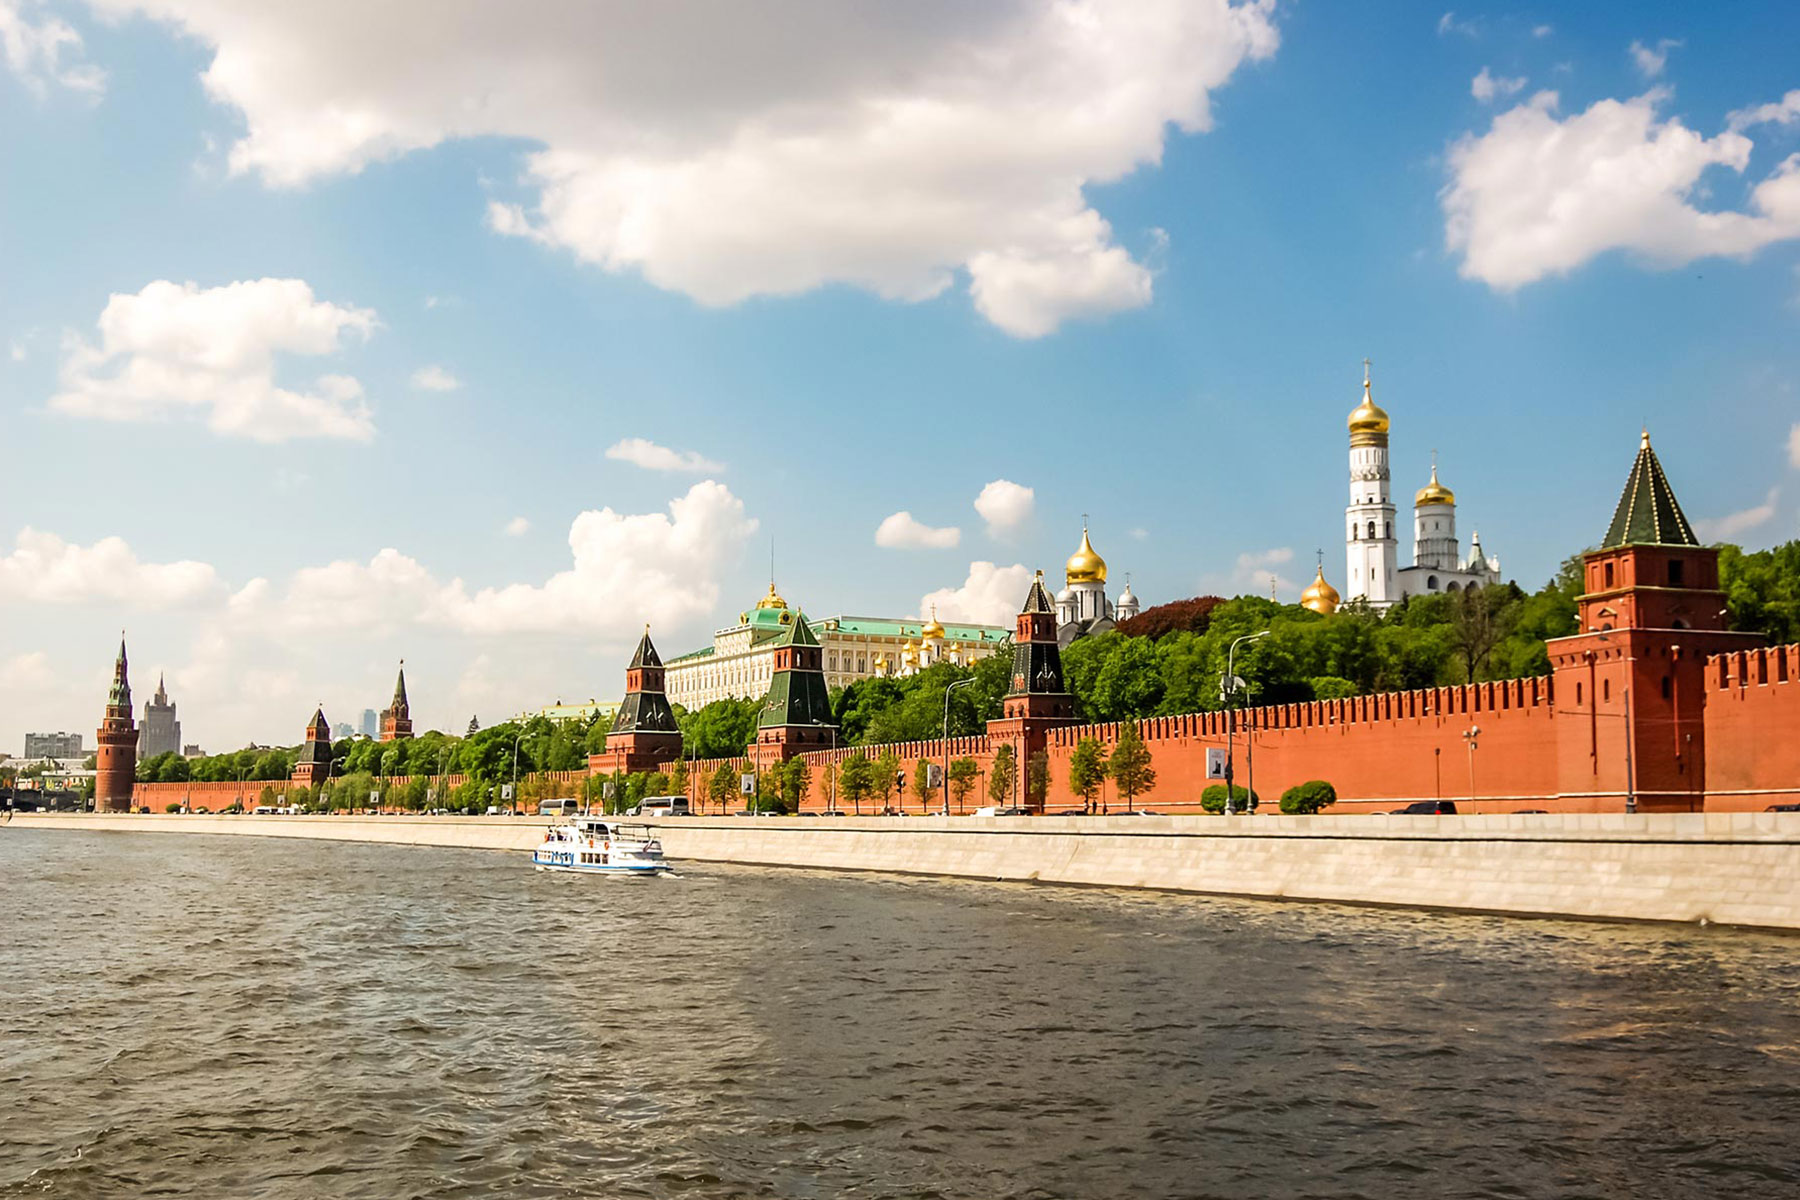 the-kremlin-on-the-banks-of-the-moscow-river-M4HDV79-1.jpg